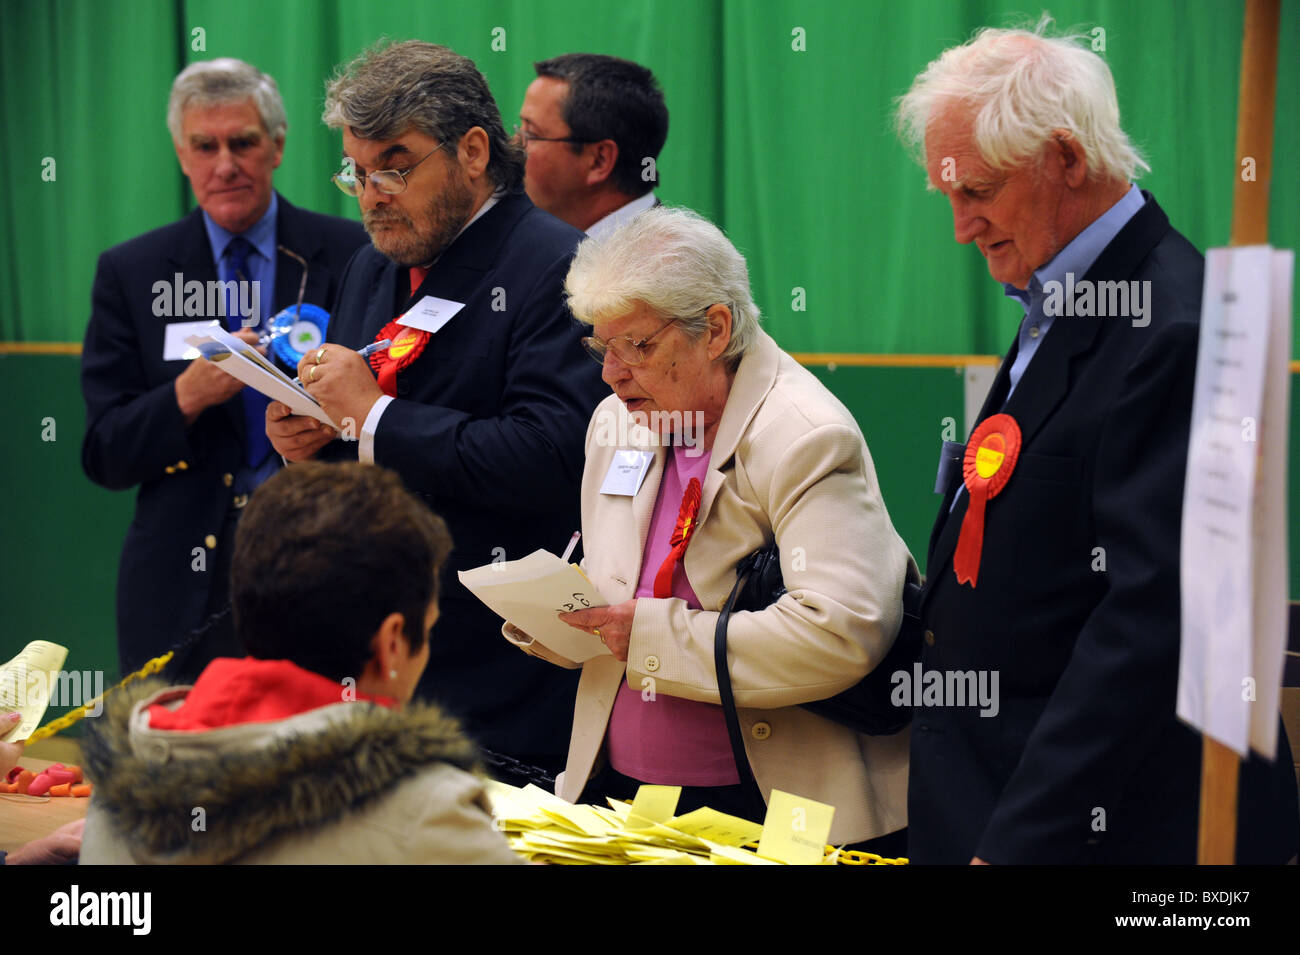 2010 General Election count held at the K2 in Crawley - Political party tellers monitor the counting of votes cast - Stock Image